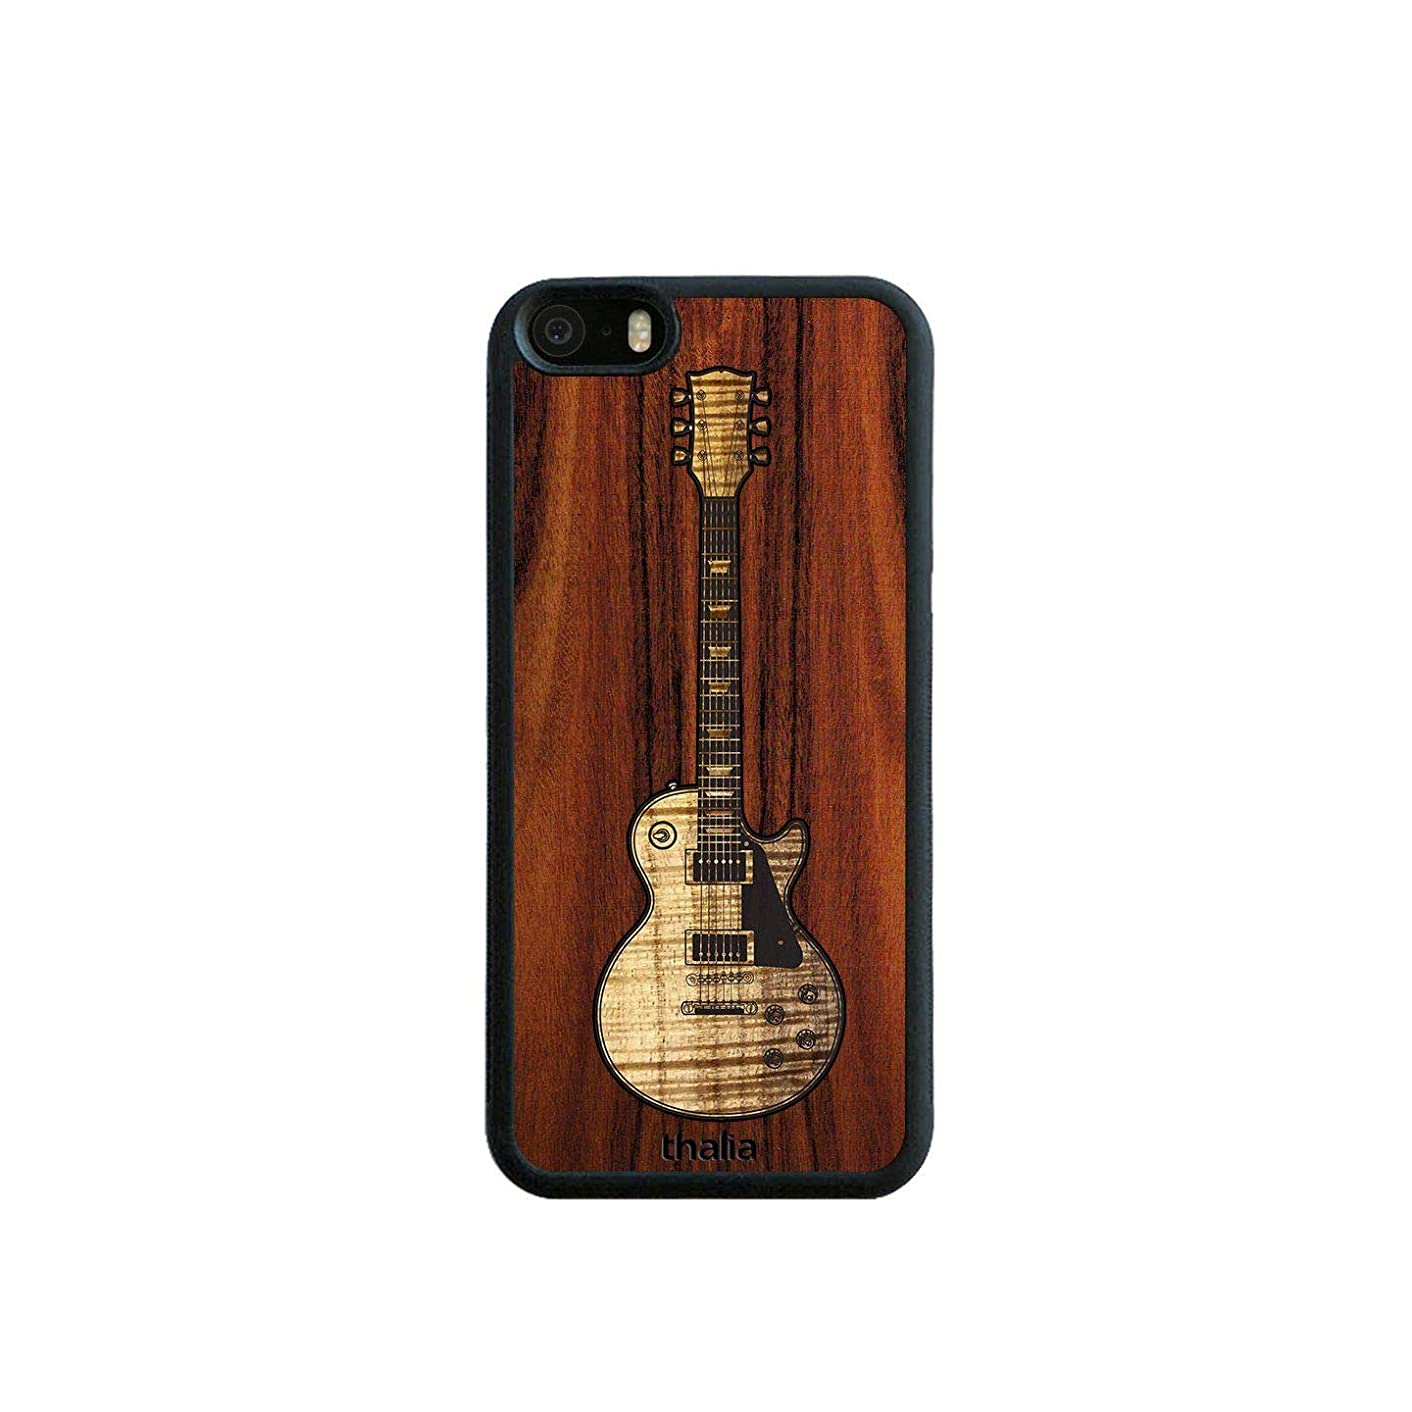 Santos Rosewood & Les Paul Hawaiian Koa Inlaid Guitar Phone Case | Thalia Exotic Wood Cases iPhone 5/5S